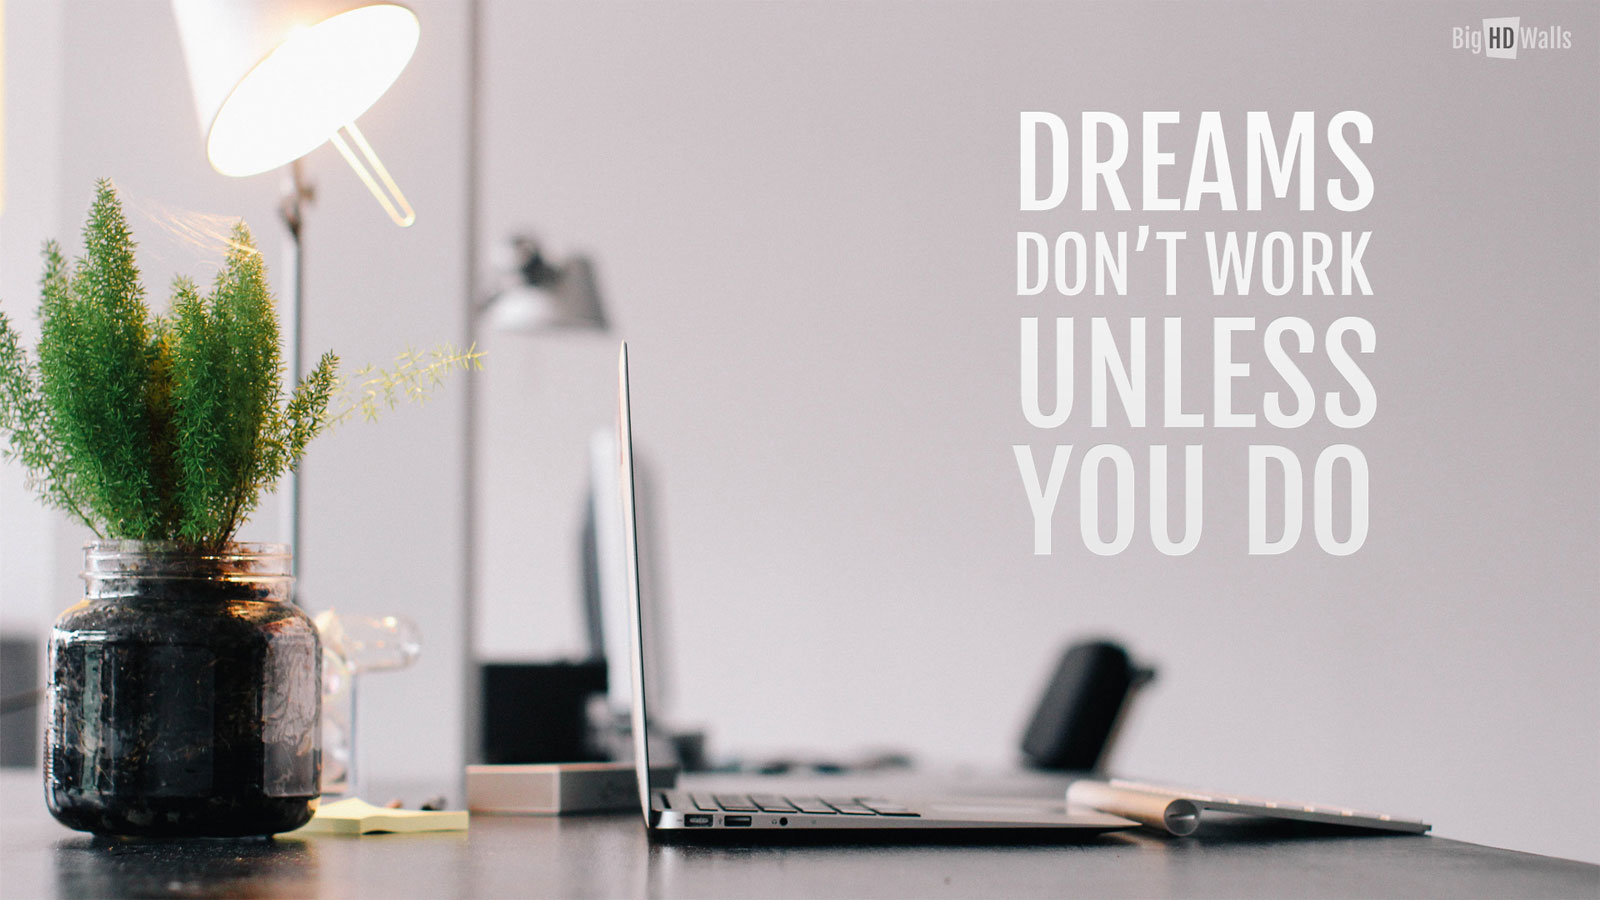 Work 115 Best Motivational Wallpaper Examples With Inspiring Quotes